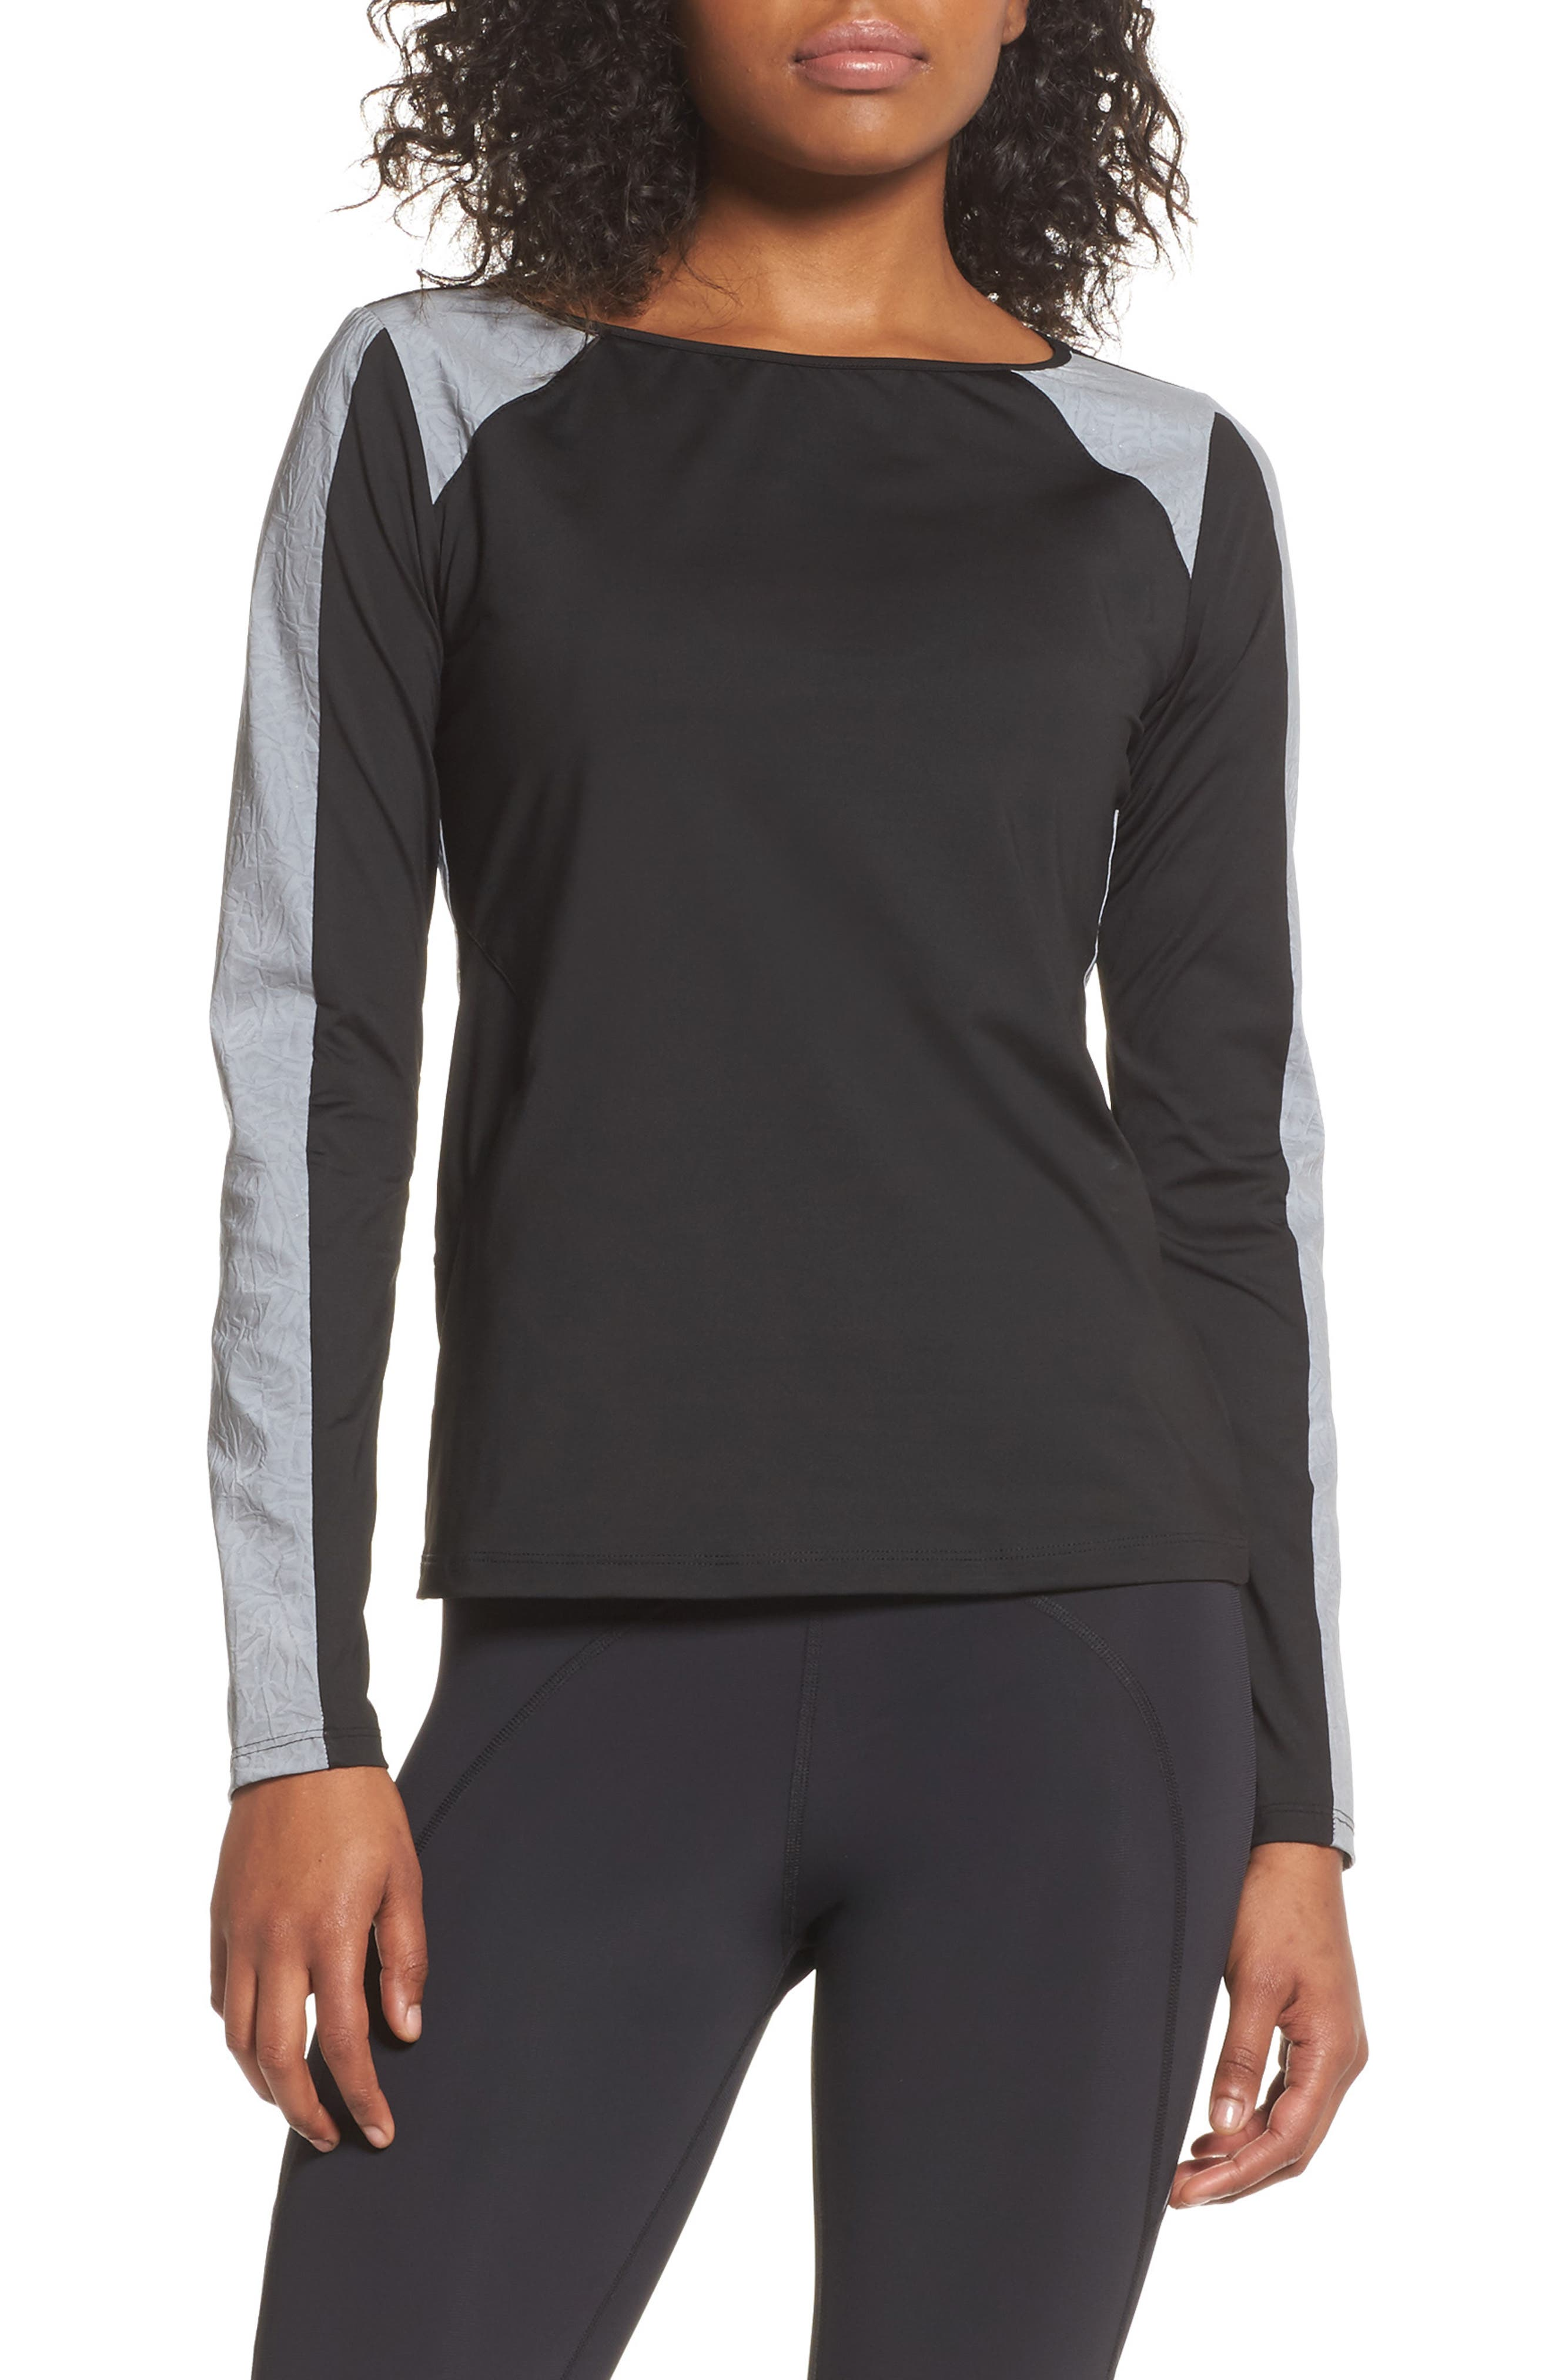 Alternate Image 1 Selected - BoomBoom Athletica Reflective Body-Con Long Sleeve Tee